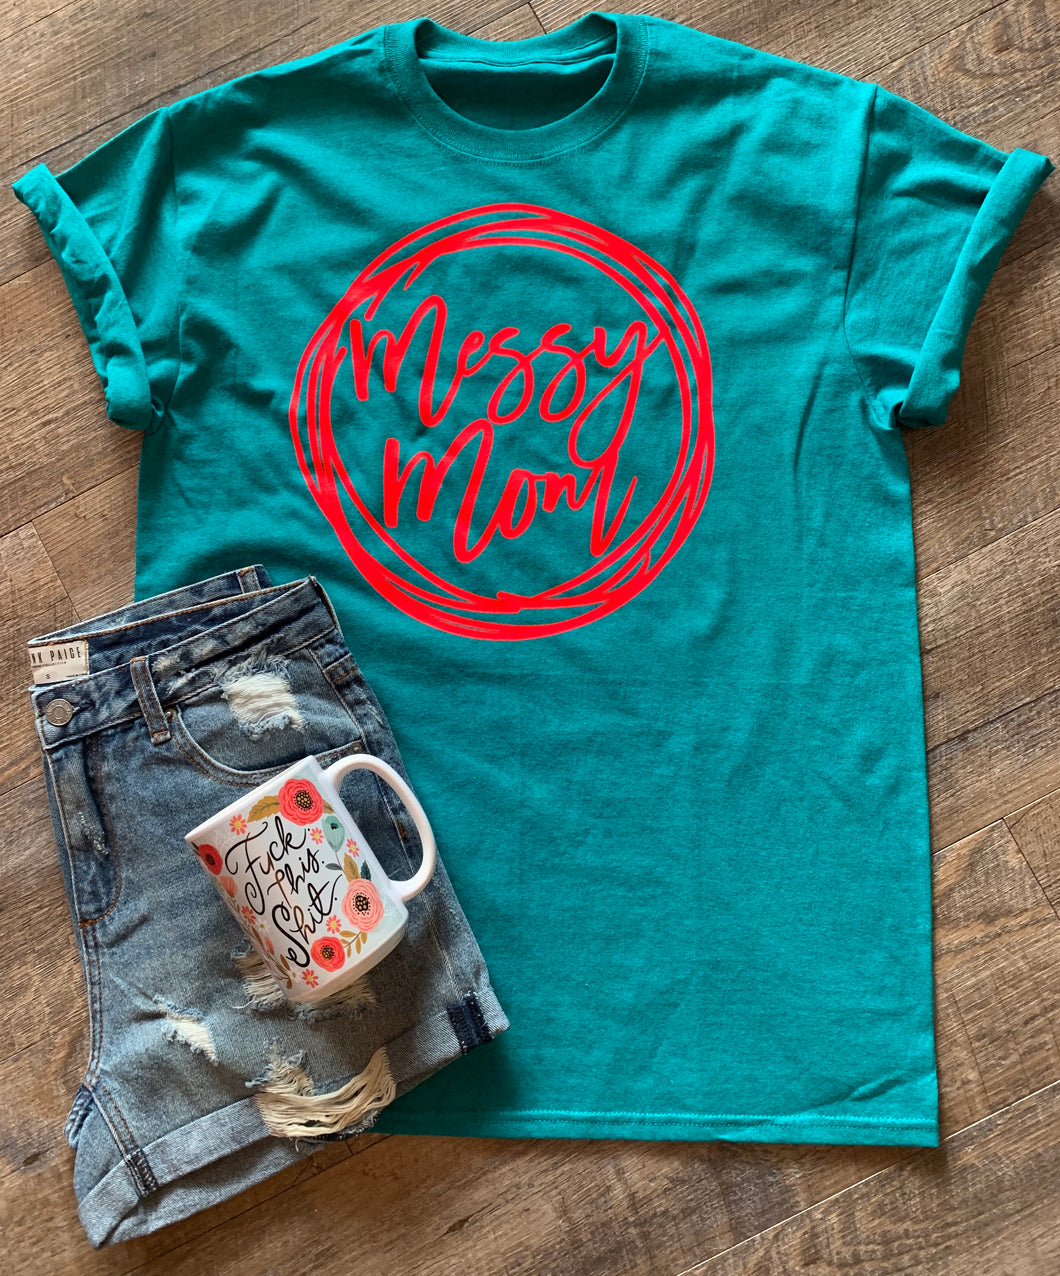 Messy mom funny teal and neon coral graphic tee - Mavictoria Designs Hot Press Express